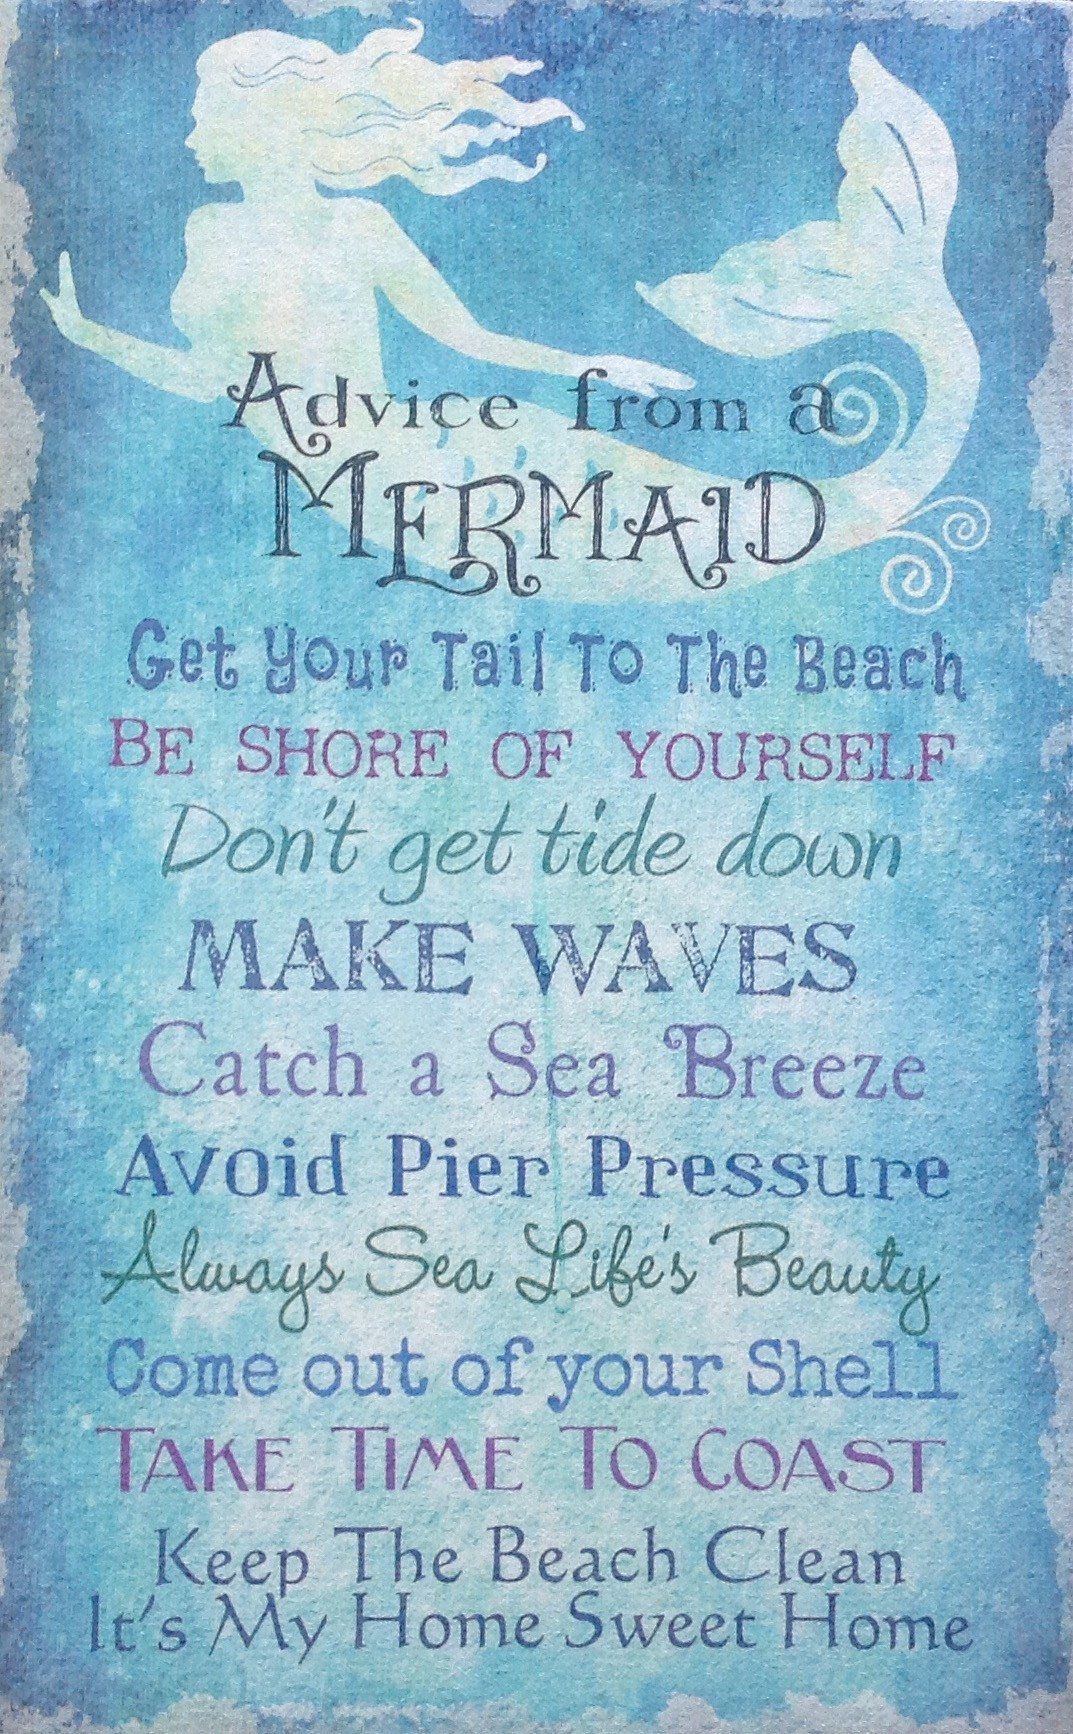 Mermaid Advice Sign | Mermaids | Pinterest | Mermaid, Advice and ...